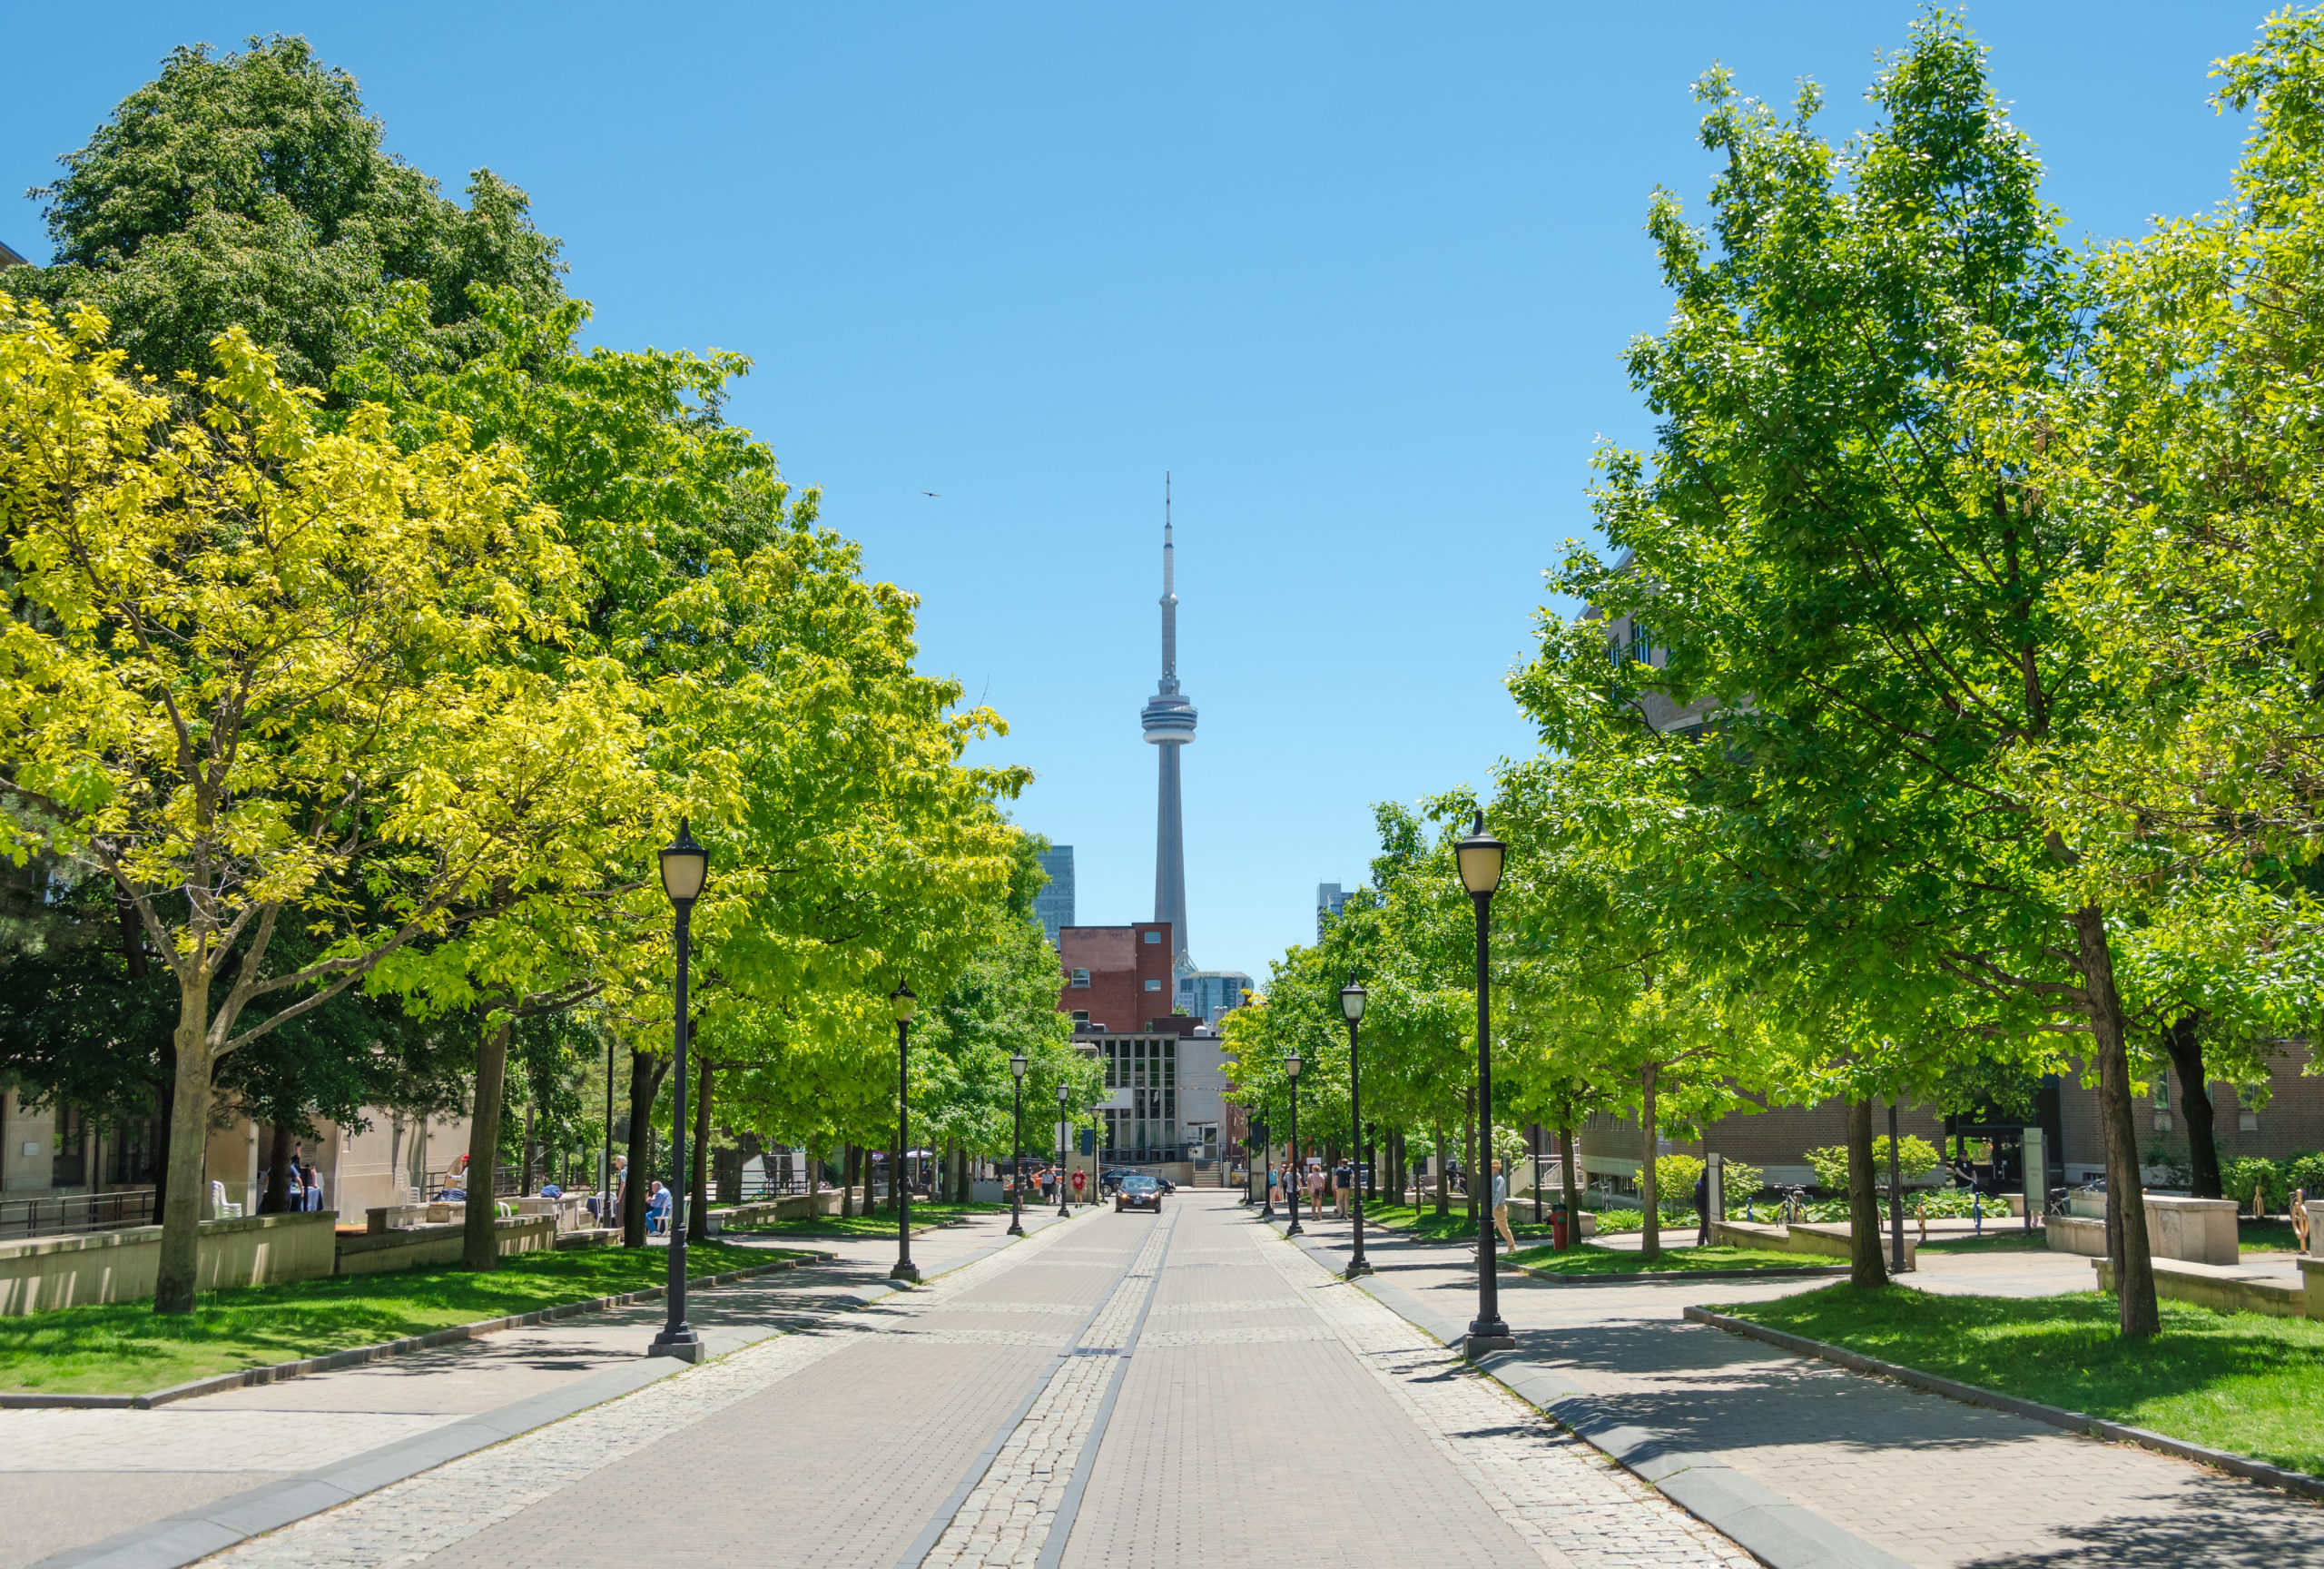 The campus at the University of Toronto in Toronto, Ontario